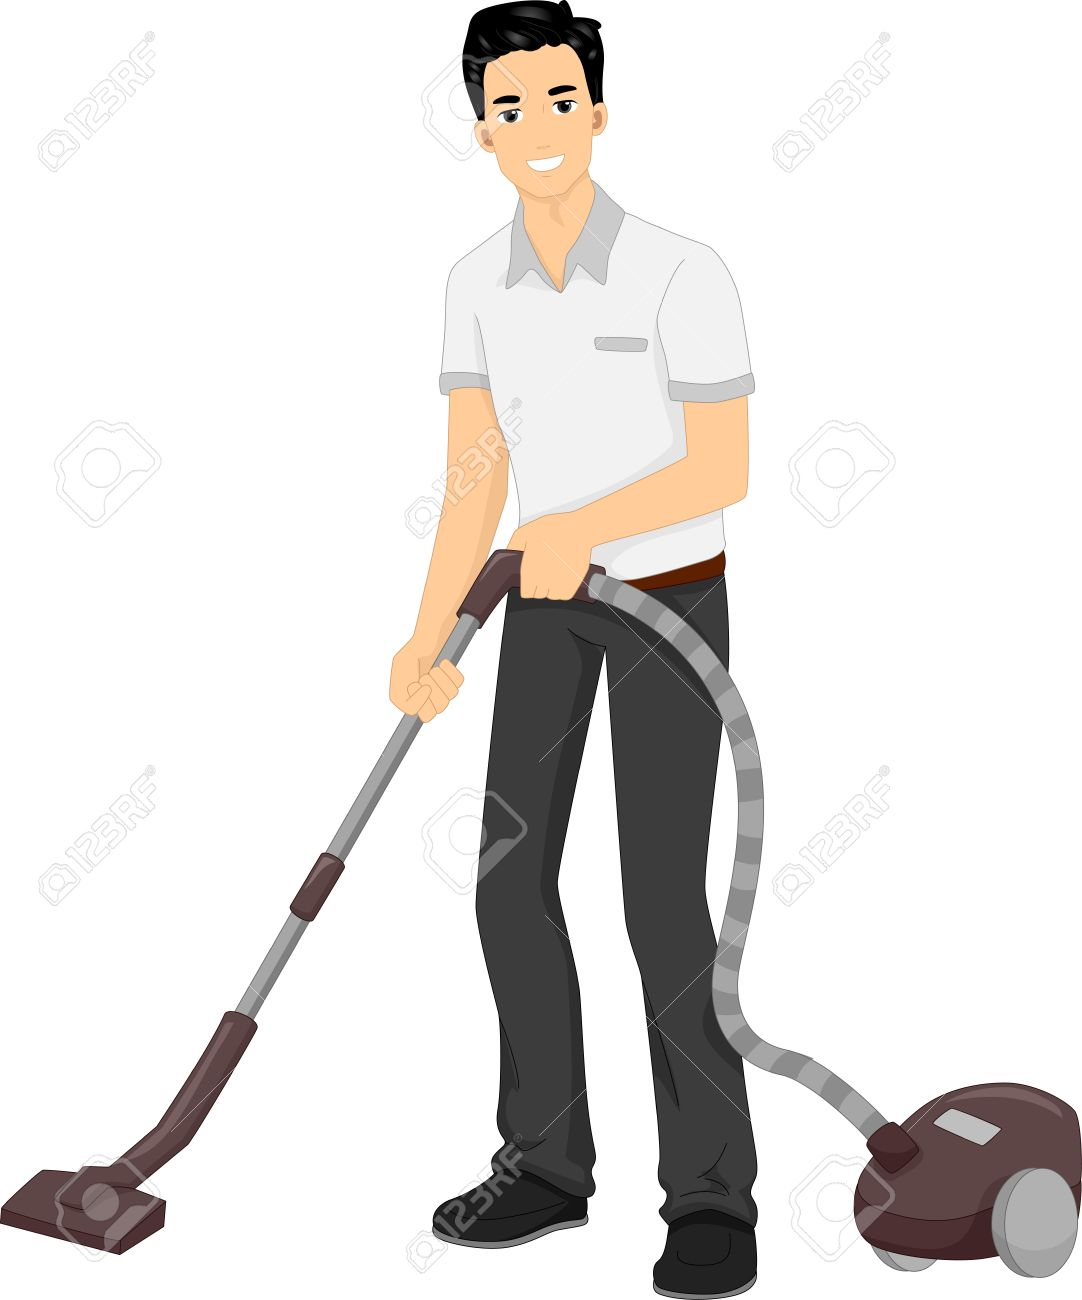 Illustration Featuring a Man Using a Vacuum Cleaner.